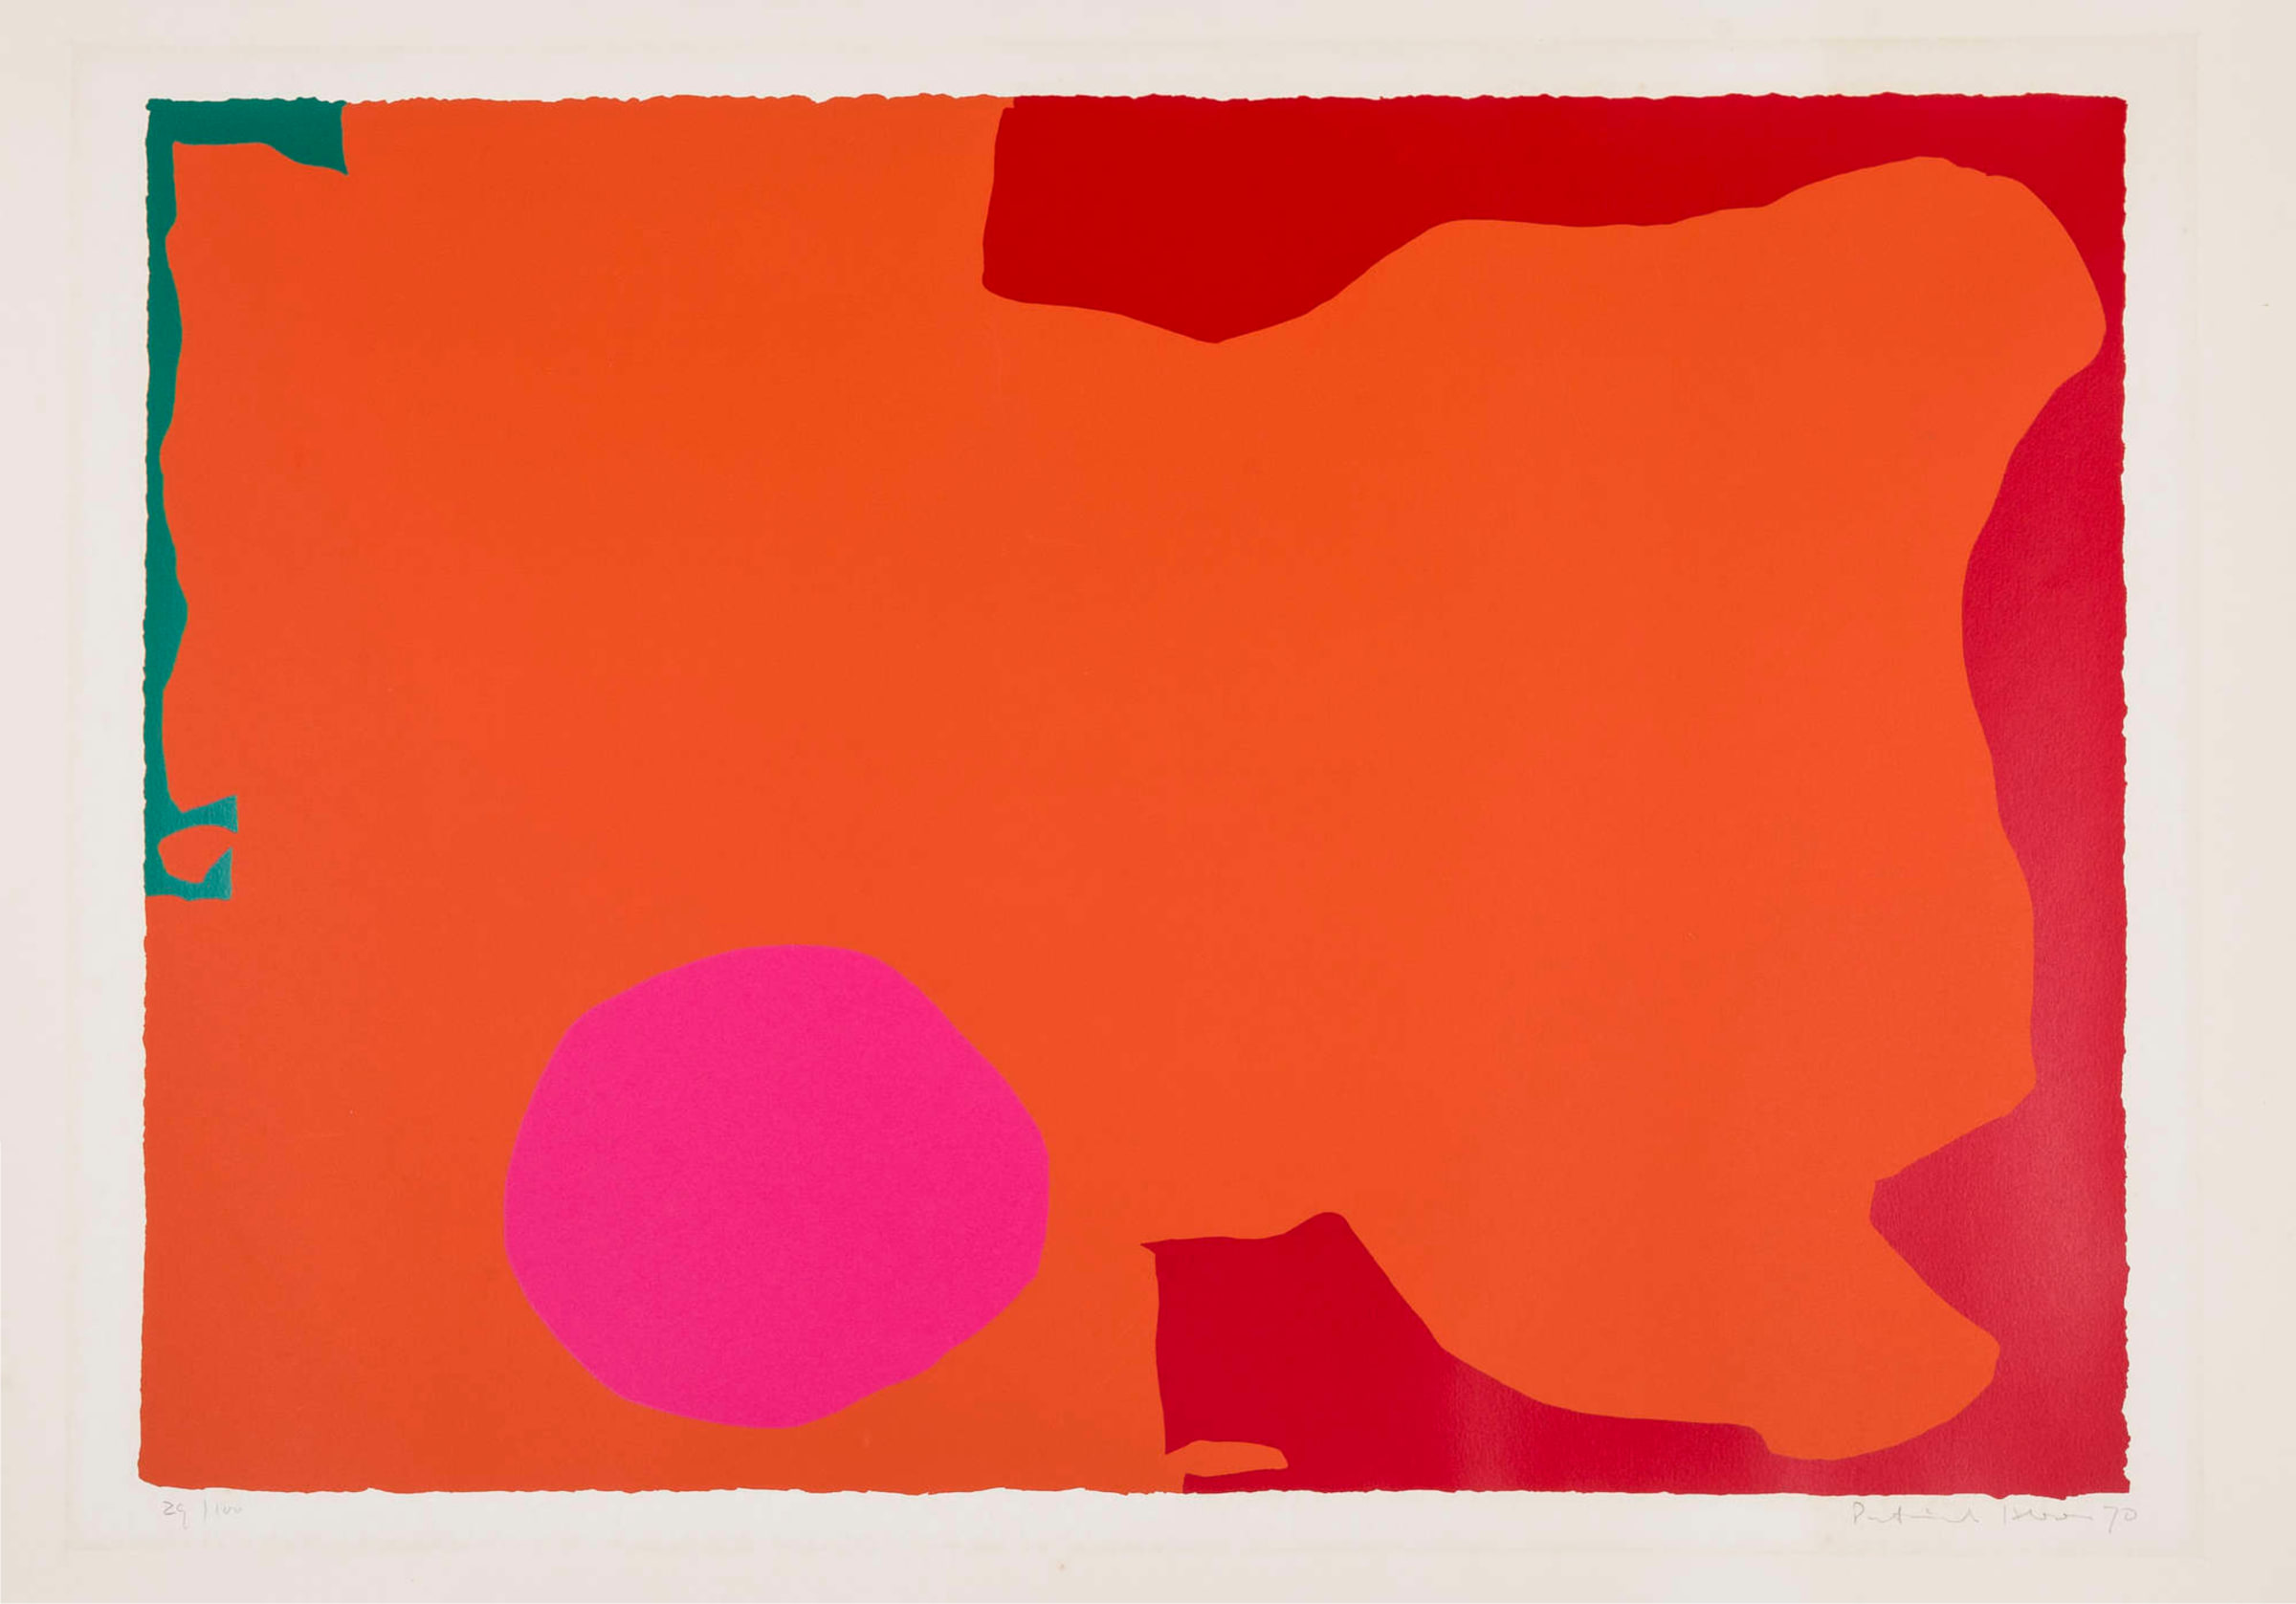 """<span class=""""link fancybox-details-link""""><a href=""""/artists/93-patrick-heron-cbe/works/7569-patrick-heron-cbe-magenta-disc-and-red-edge-april-1970-1970/"""">View Detail Page</a></span><div class=""""artist""""><strong>Patrick Heron CBE</strong></div> 1920 – 1999 <div class=""""title""""><em>Magenta Disc and Red Edge: April 1970</em>, 1970</div> <div class=""""signed_and_dated"""">signed, dated, and numbered in pencil from the edition of 72</div> <div class=""""medium"""">silkscreen print in colours on wove paper, with full margins</div> <div class=""""dimensions"""">image size: 59.3 x 79.6 cm<br /> sheet size: 70.6 x 106 cm</div> <div class=""""edition_details"""">edition 29 of 72</div><div class=""""copyright_line"""">© The Estate of Patrick Heron</div>"""